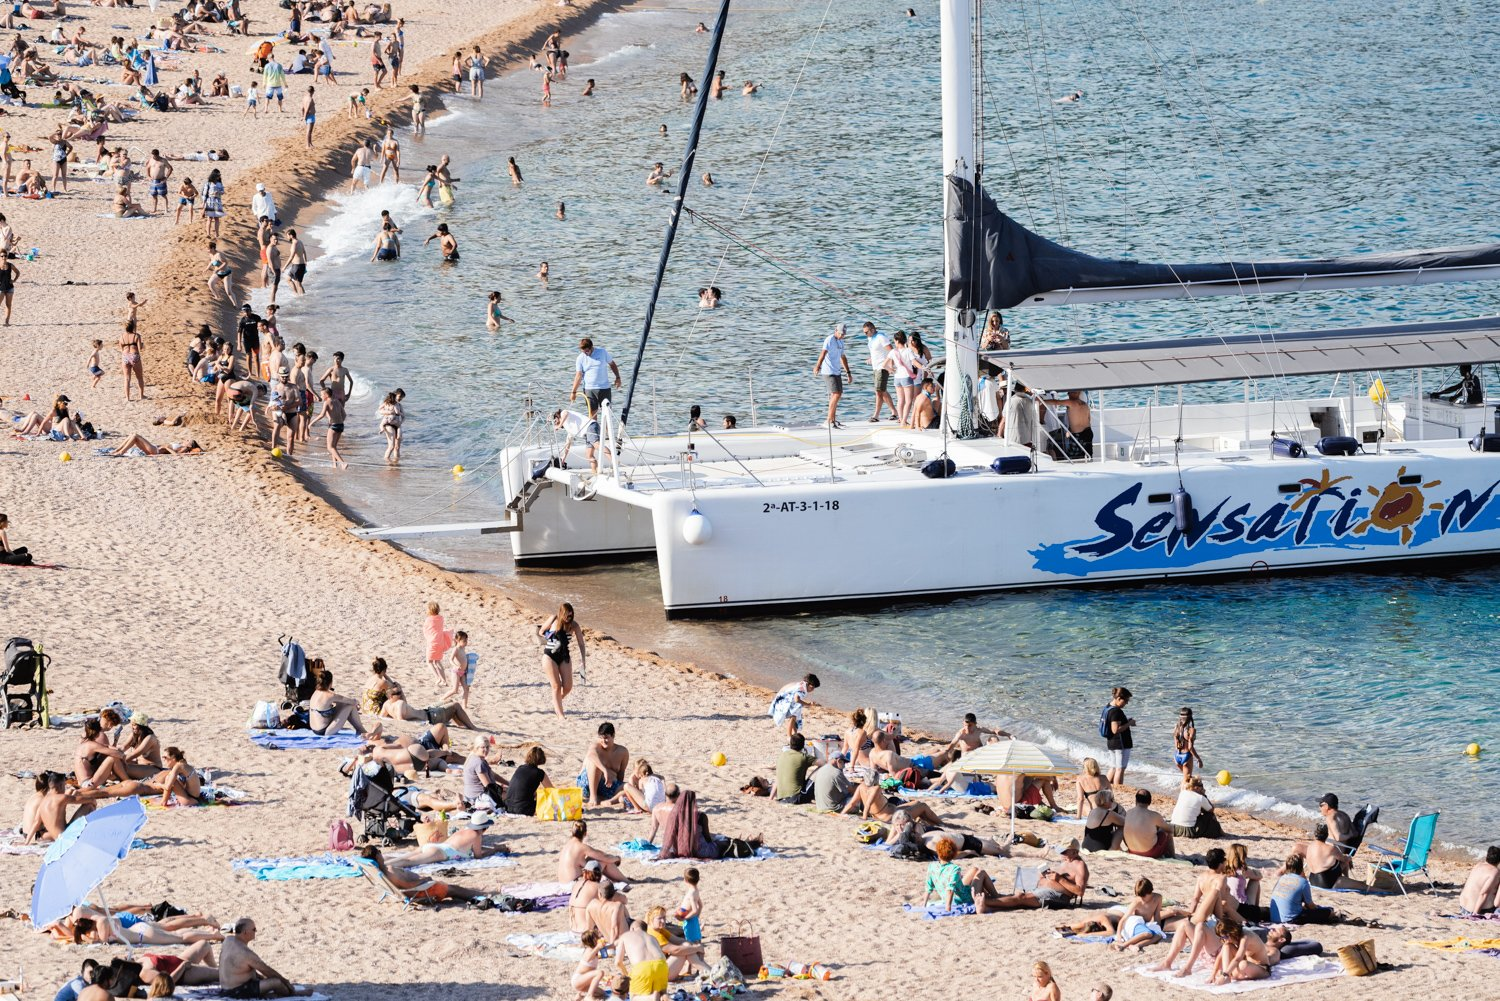 Sailing boat parked on a crowded beach in Spain